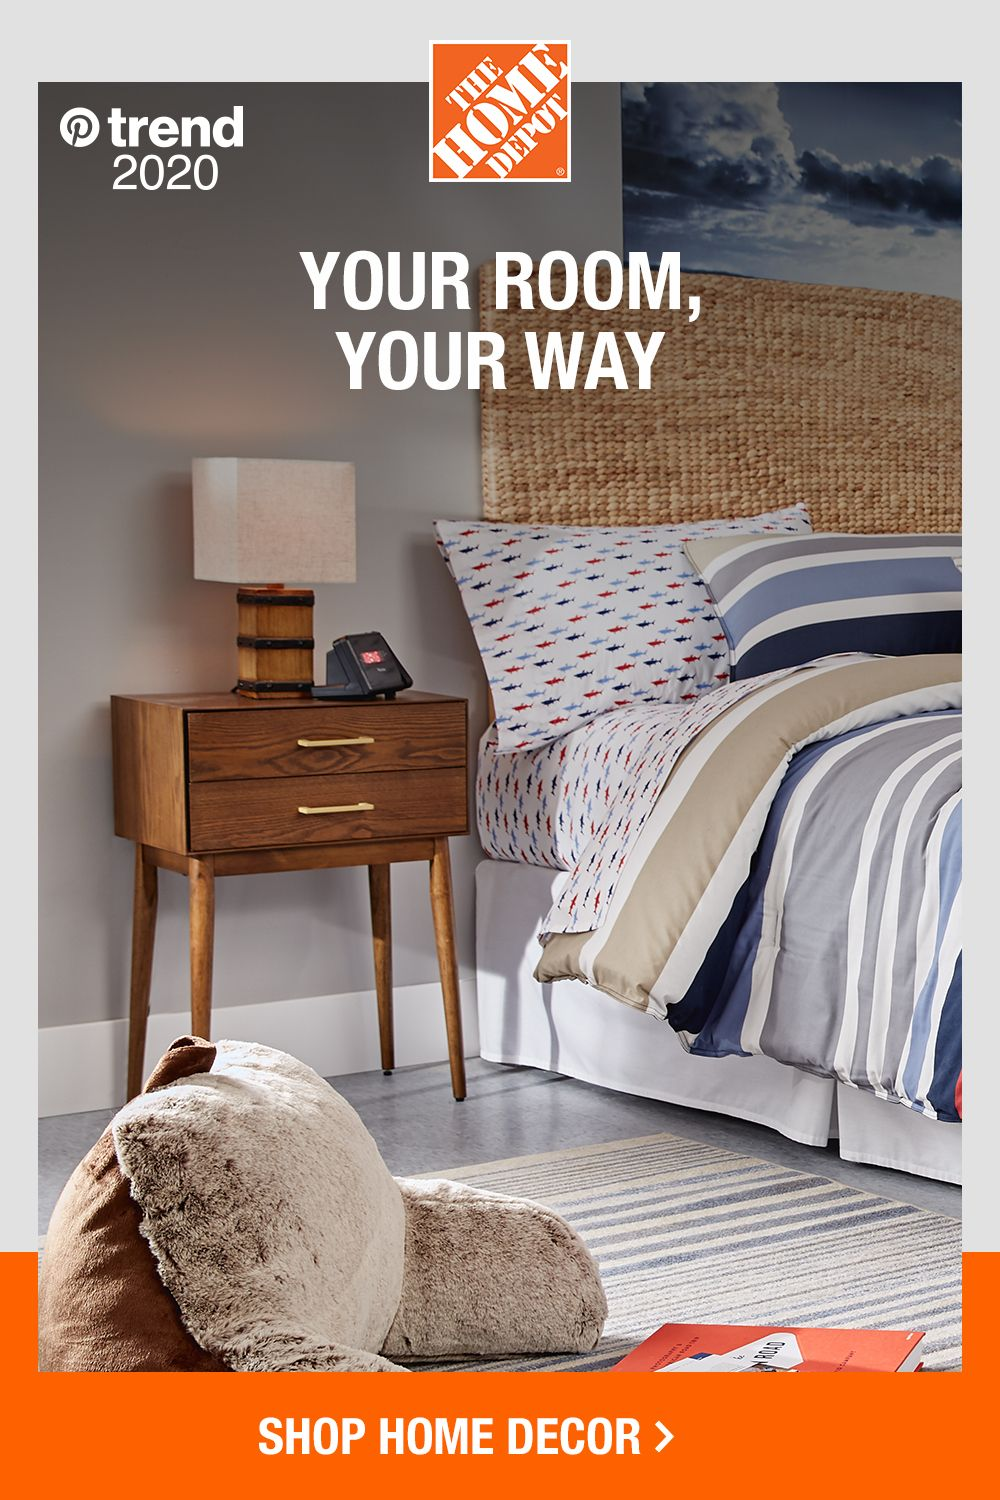 Shop on-trend bedding, furniture and home decor at The Home Depot. Make  your room your own with a variety of options t… in 2020 | Home decor, Home,  Farmhouse style bedrooms